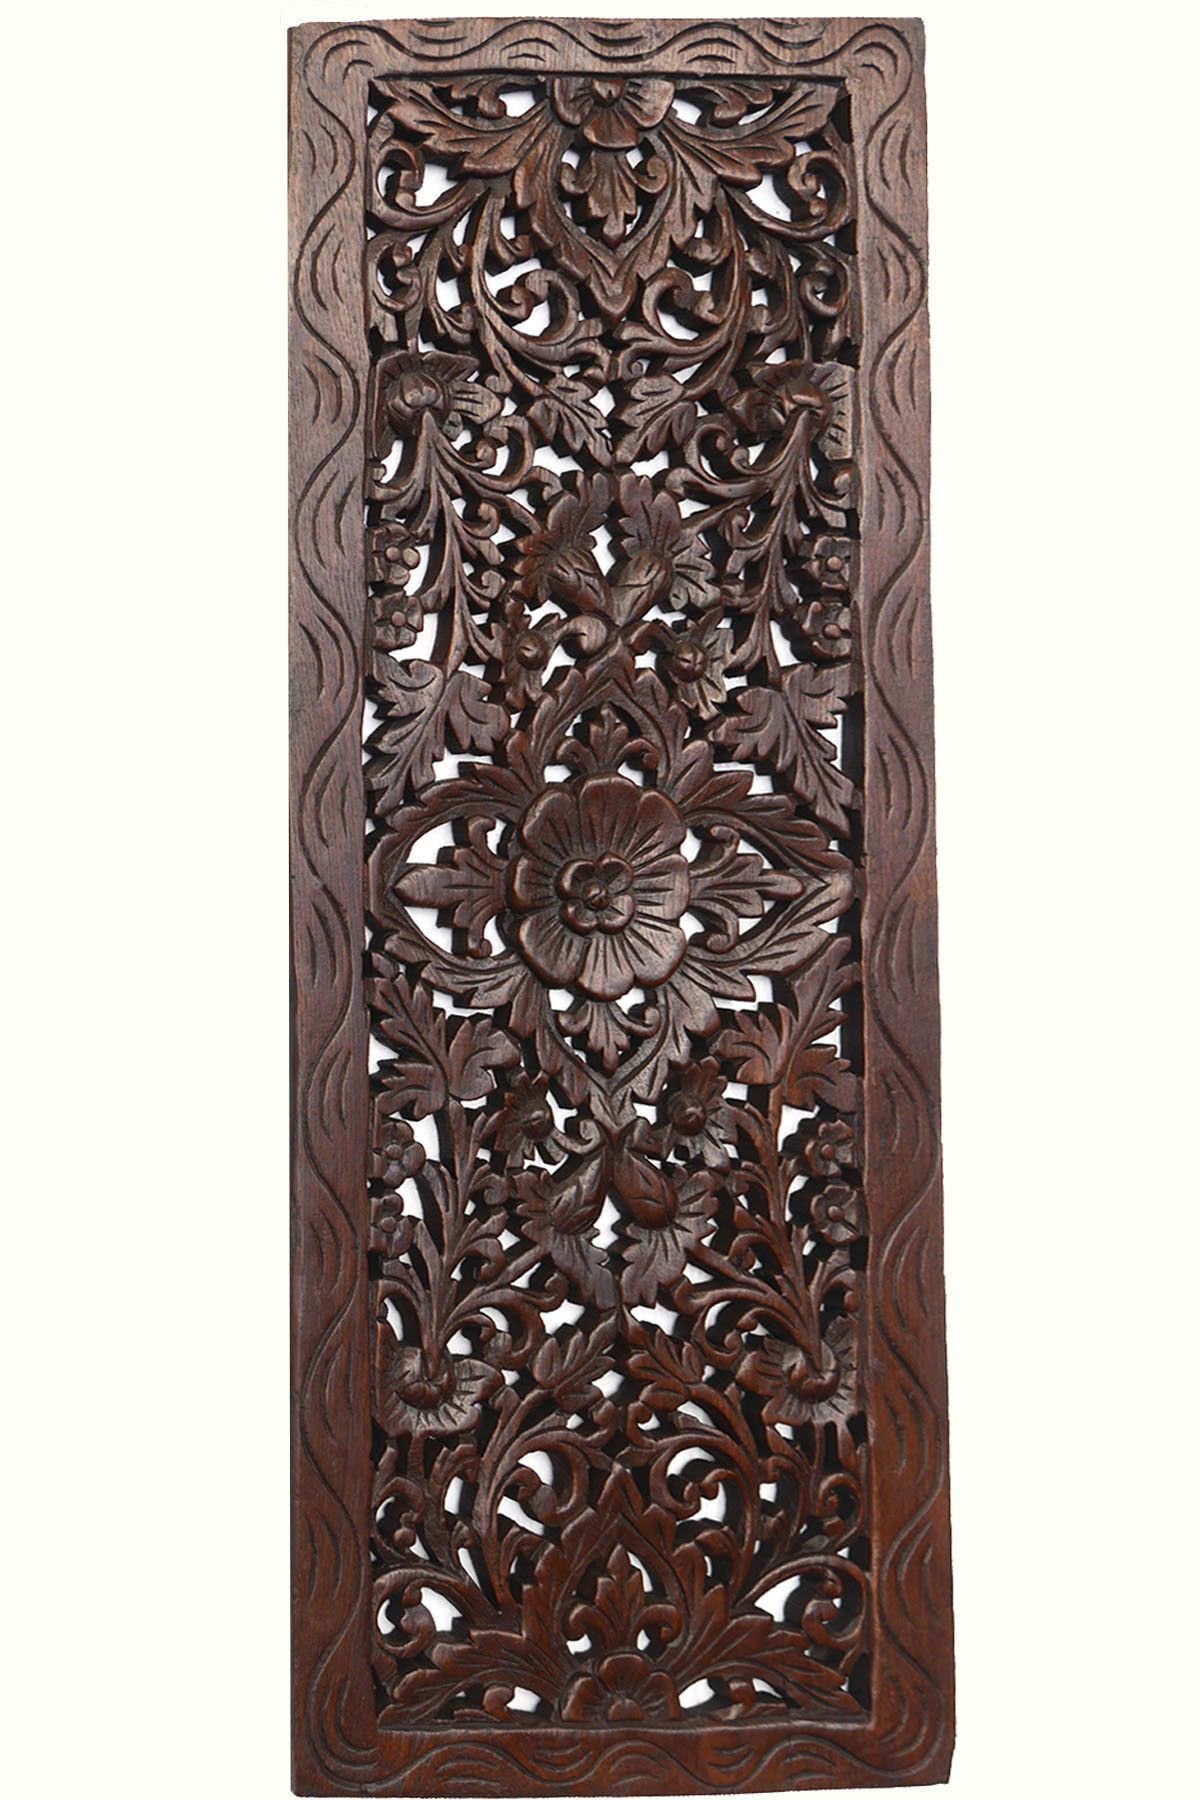 Decorative Wood Wall Panels Floral Wood Carved Wall Panel Decorative Thai Wall Relief Panel